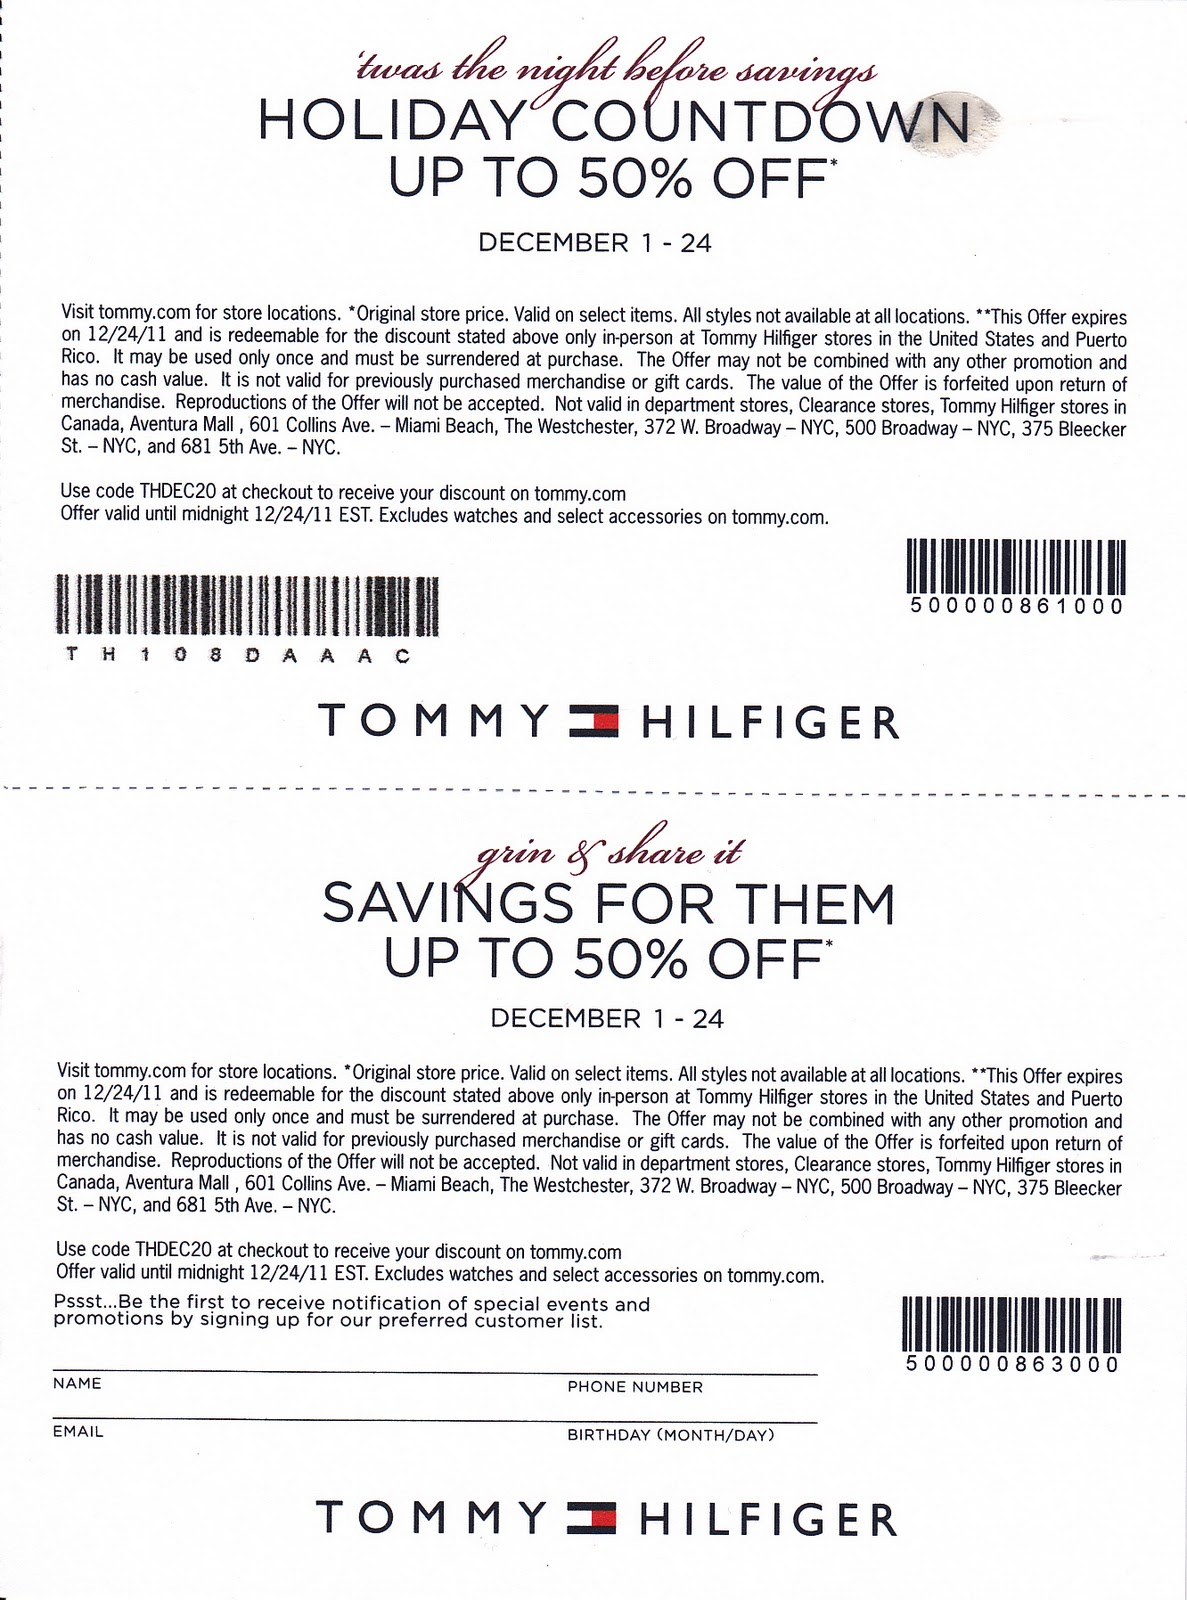 picture regarding Tommy Hilfiger Printable Coupons named Tommy Hilfiger Printable Discount coupons (2) Printable Coupon codes On-line